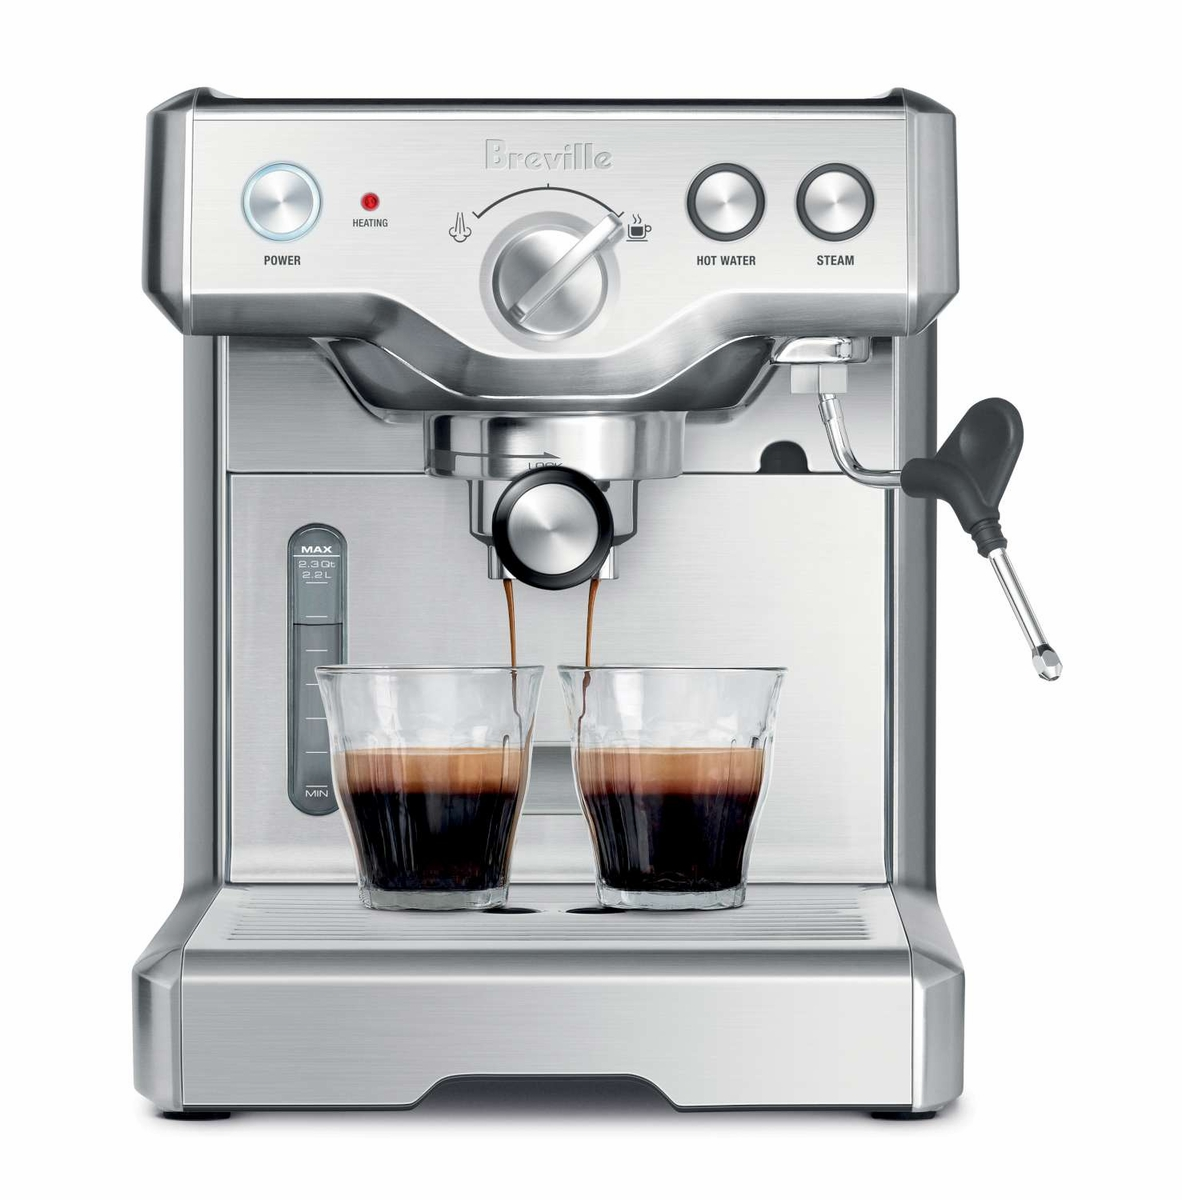 Breville 800ESXL Die-Cast Duo-Temp Espresso Machine at Chefs Corner Store